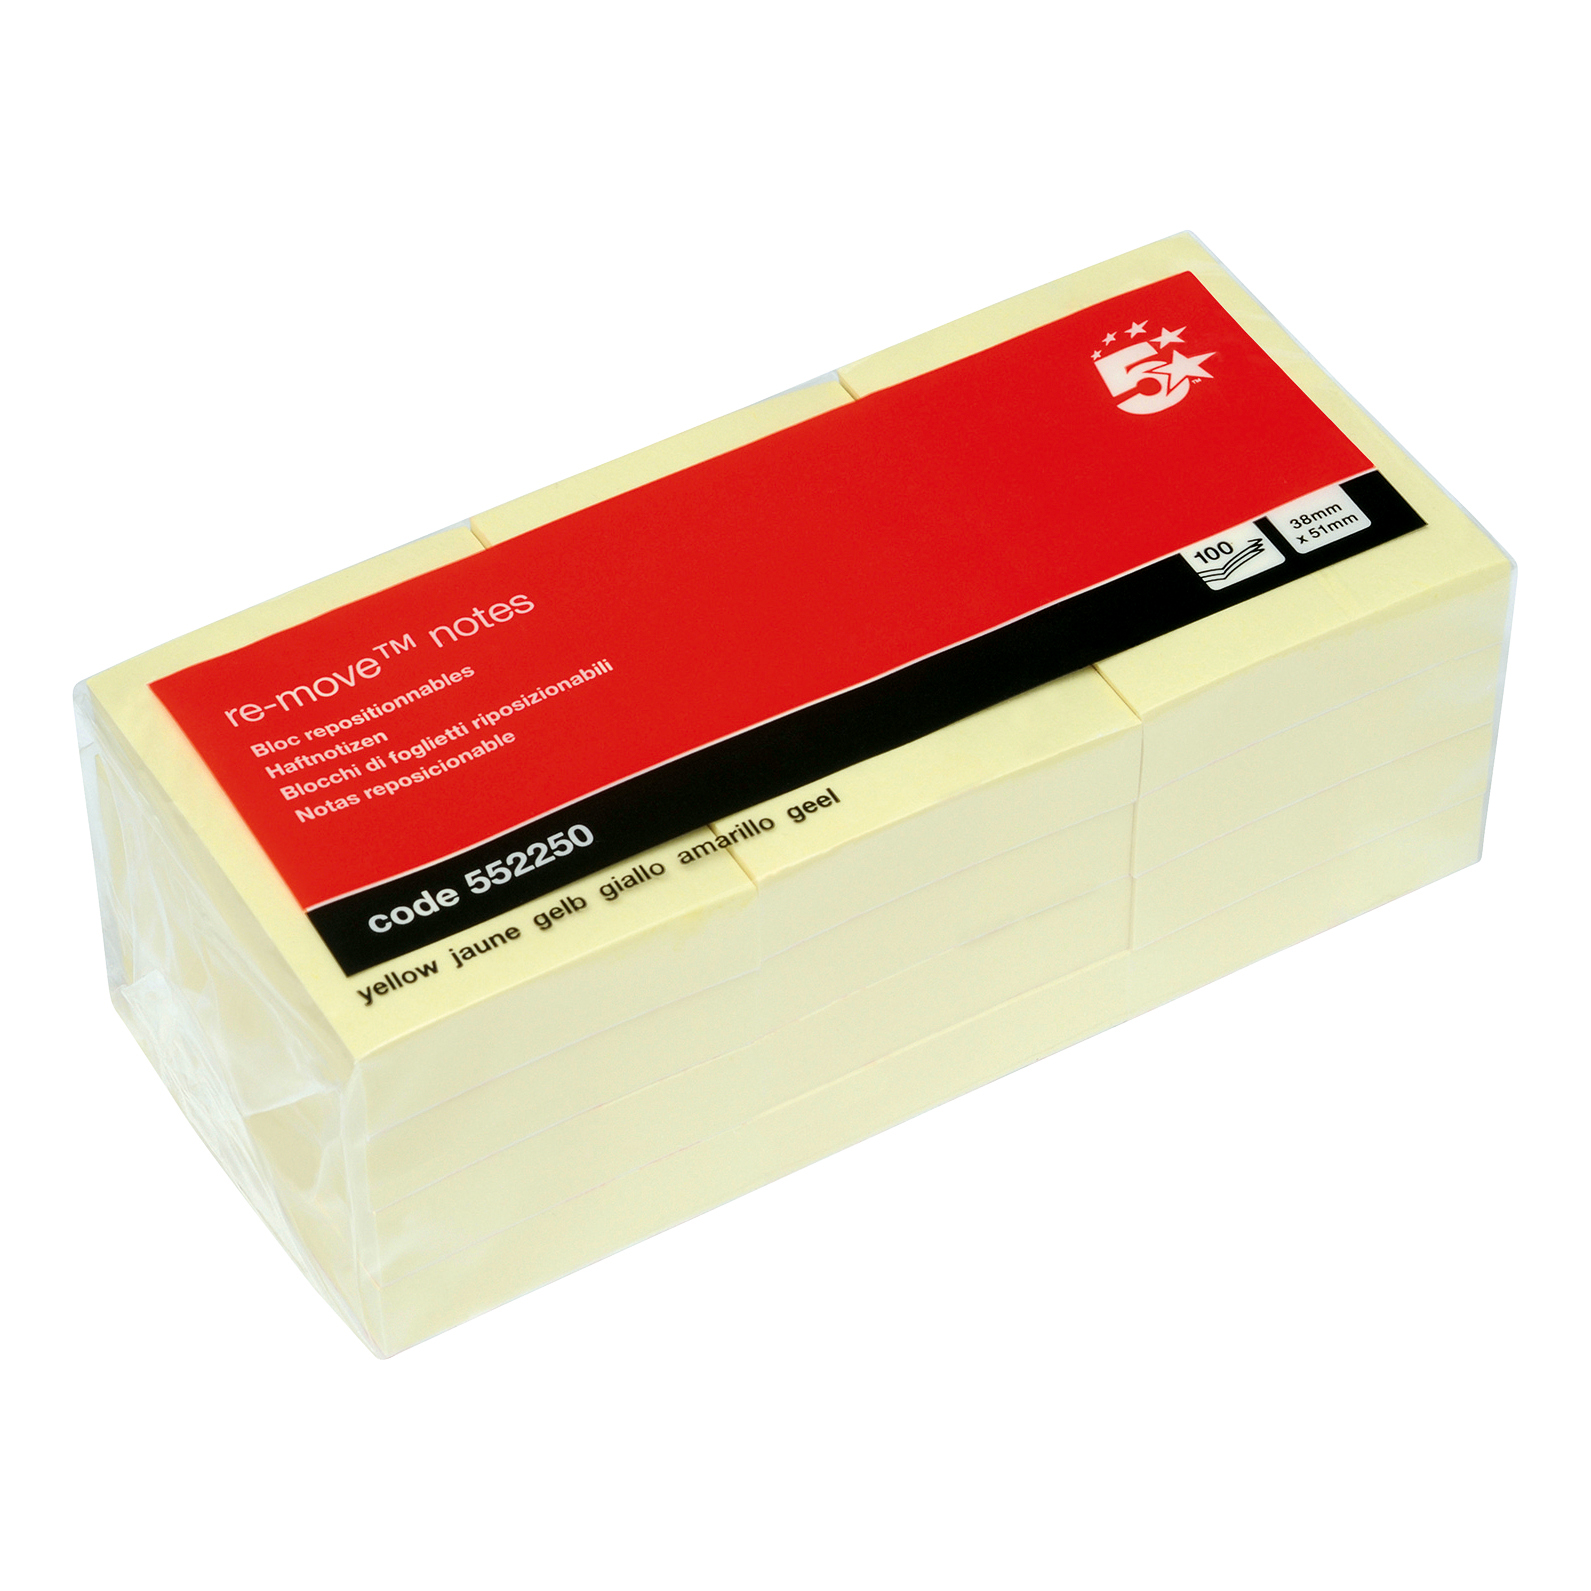 5 Star Office Re-Move Notes Repositionable Pad of 100 Sheets 38x51mm Yellow Pack 12